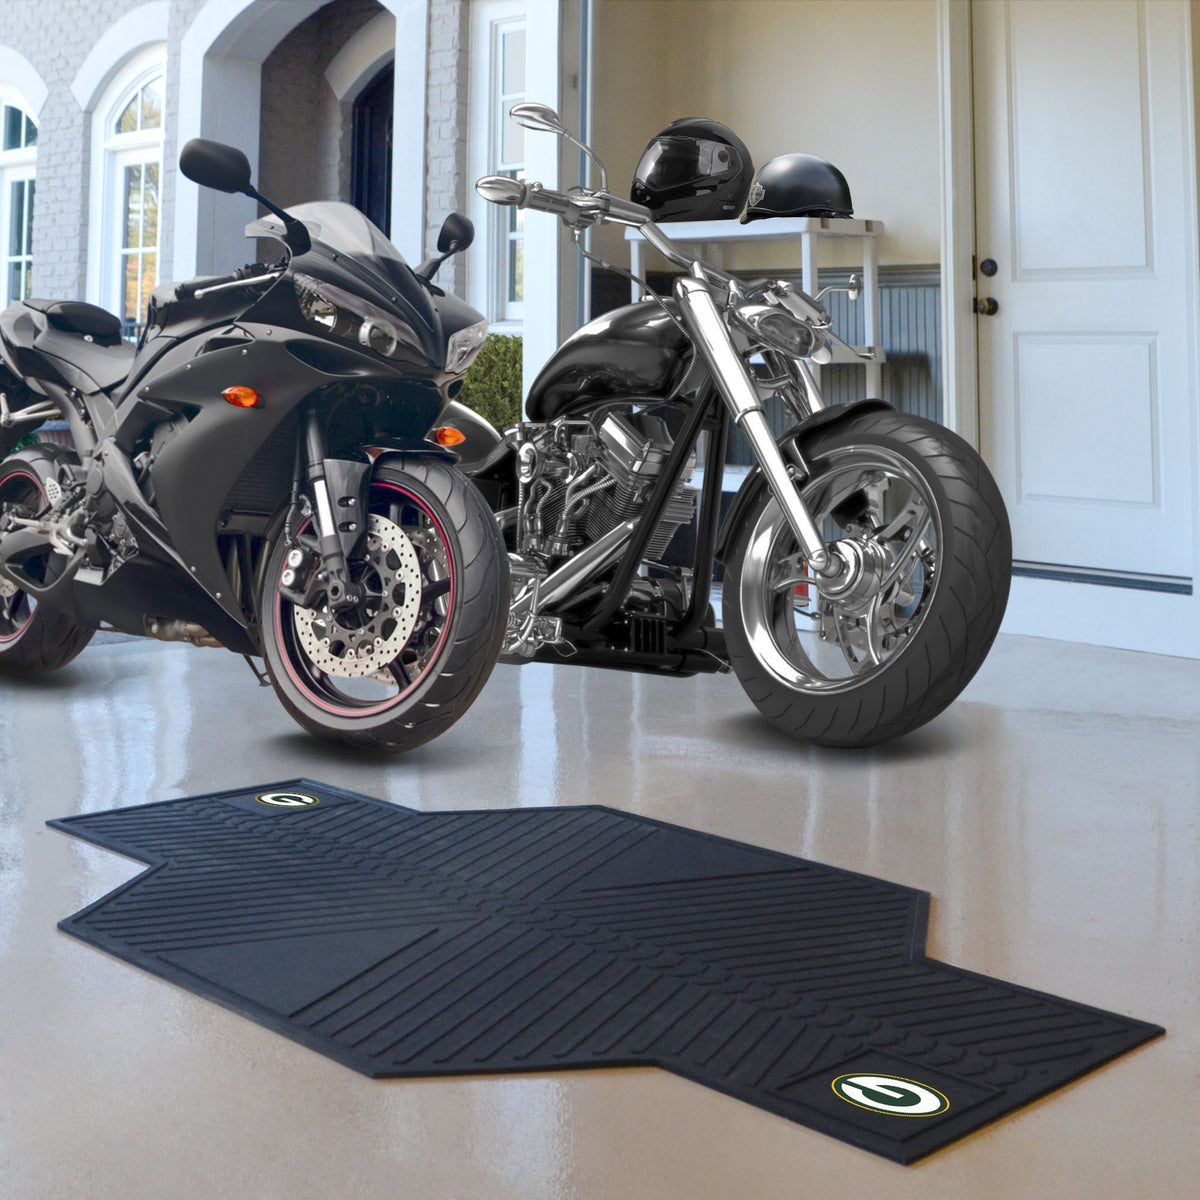 "NFL - Motorcycle Mat, 82.5"" x 42"" NFL Mats, Motorcycle Accessory, Motorcycle Mat, NFL, Auto Fan Mats Green Bay Packers"